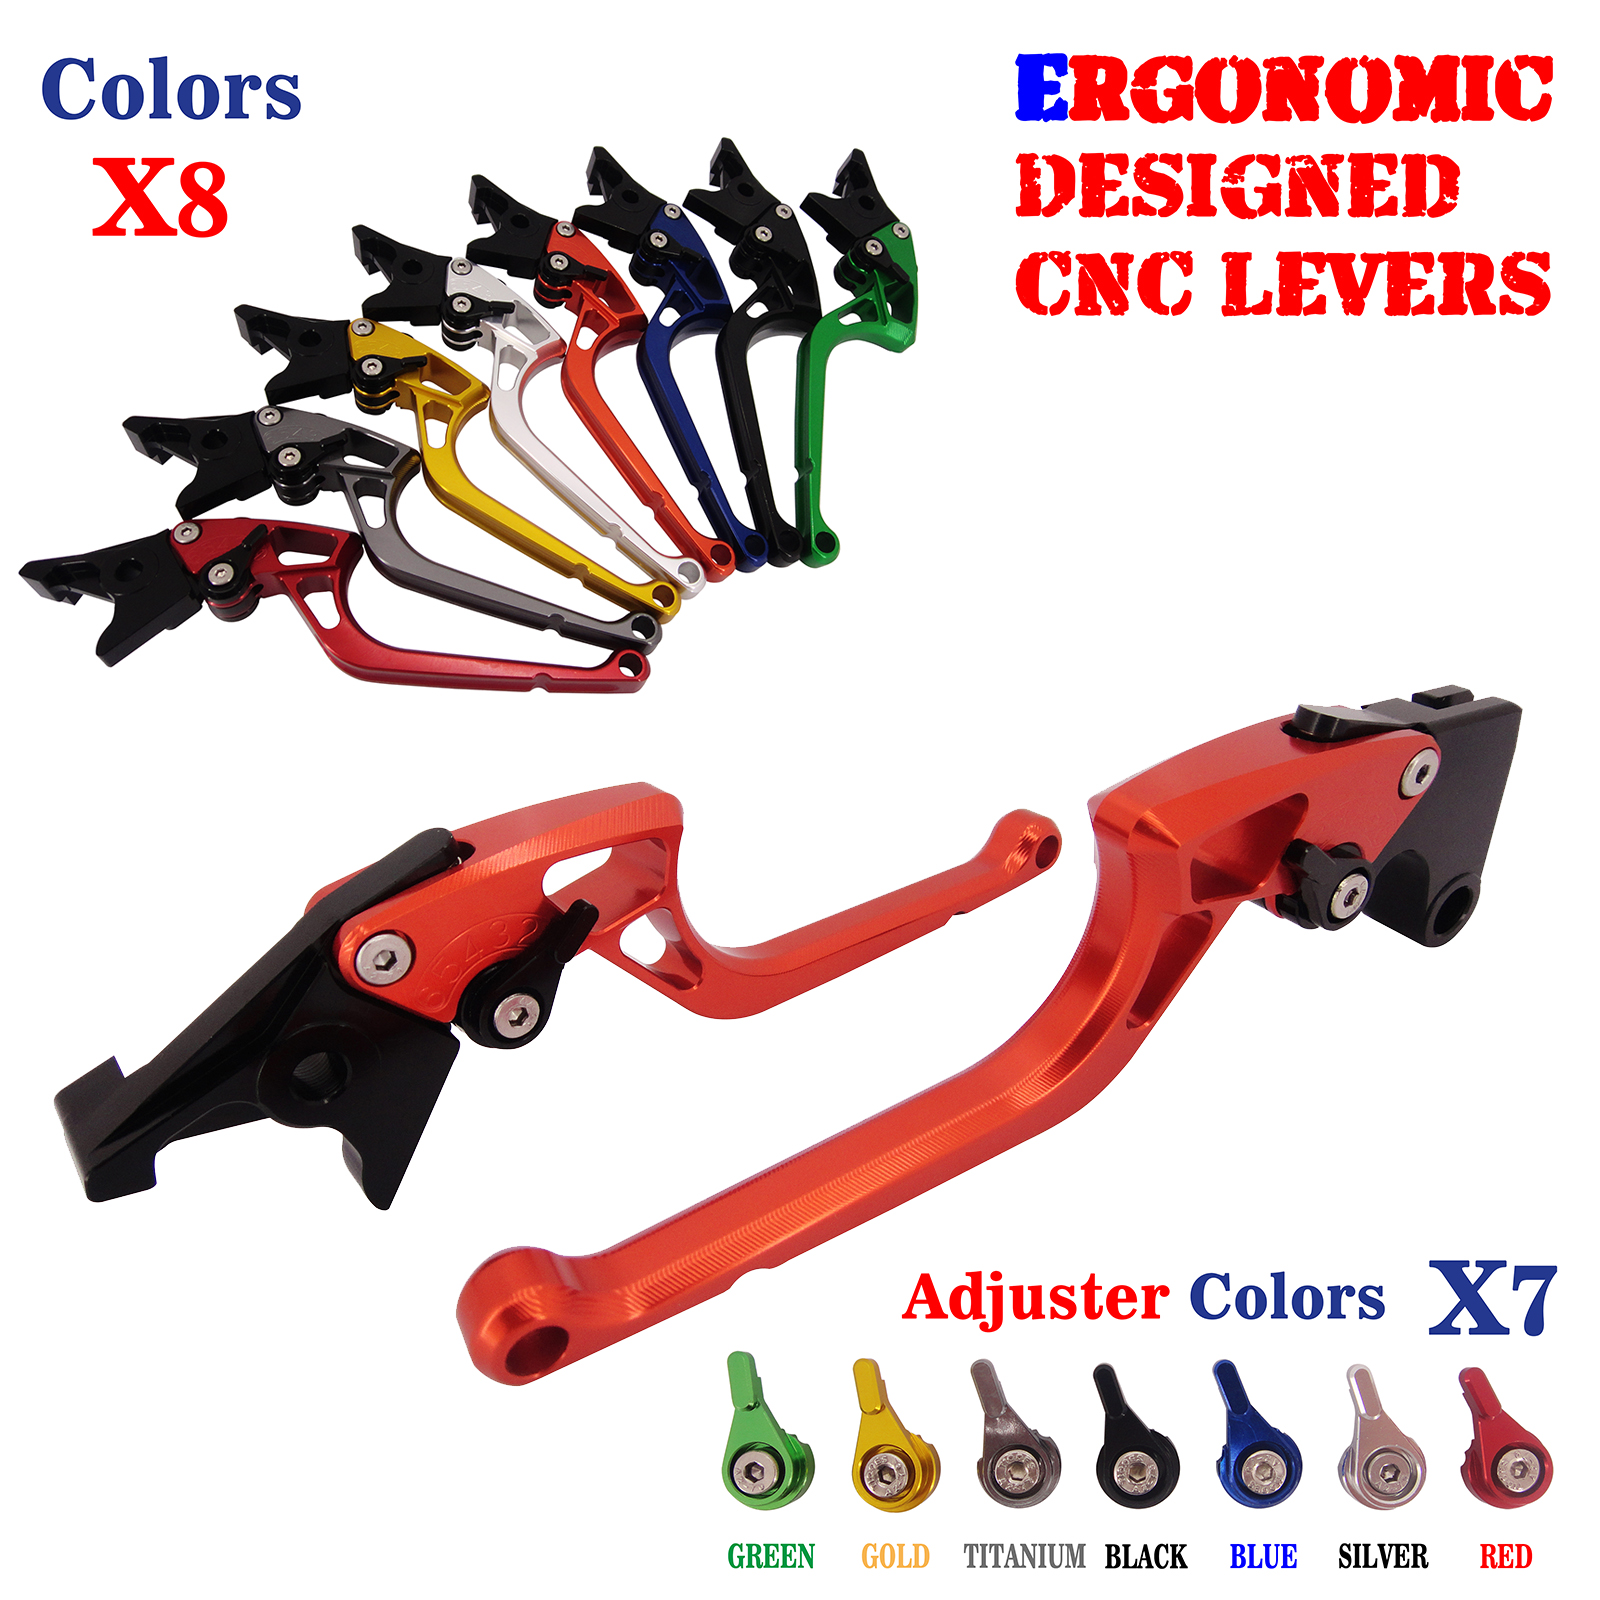 Ergonomic CNC Adjustable Brake Clutch Levers For Honda CB599/CB600 Hornet  CBR900RR NC700 NC750 S/X CBR600 F2 F3 F4 F4i 1991-07